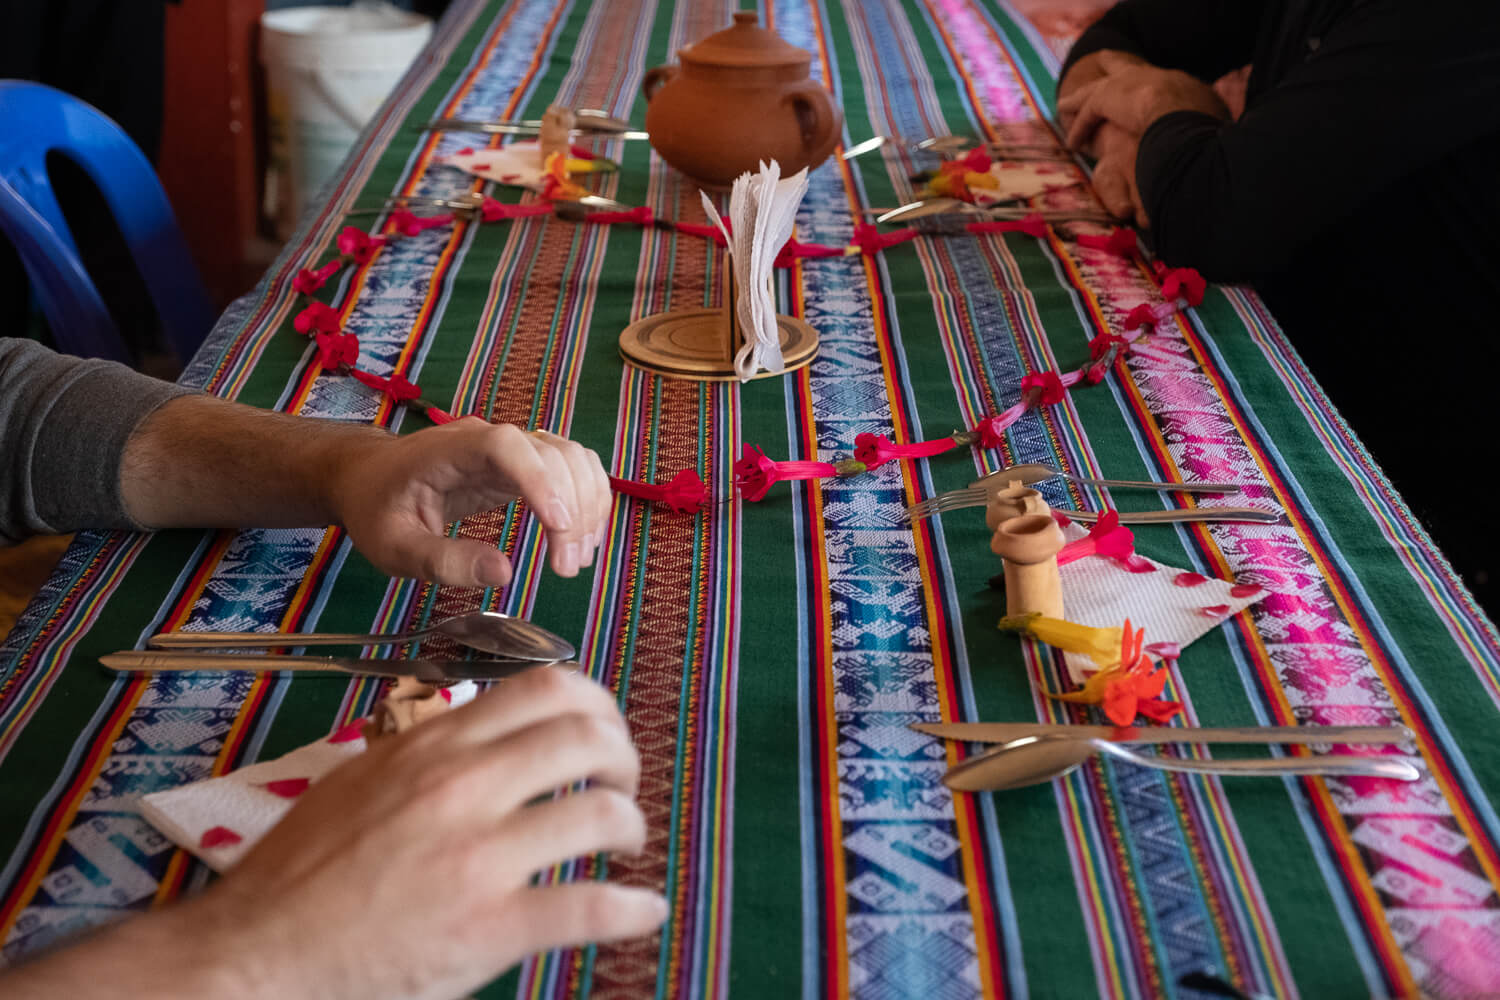 """Table is set for lunch, Amantani Island. Travel photography and guide by © Natasha Lequepeys for """"And Then I Met Yoko"""". #peru #laketiticaca #homestay #photoblog #travelblog #fujifilm"""